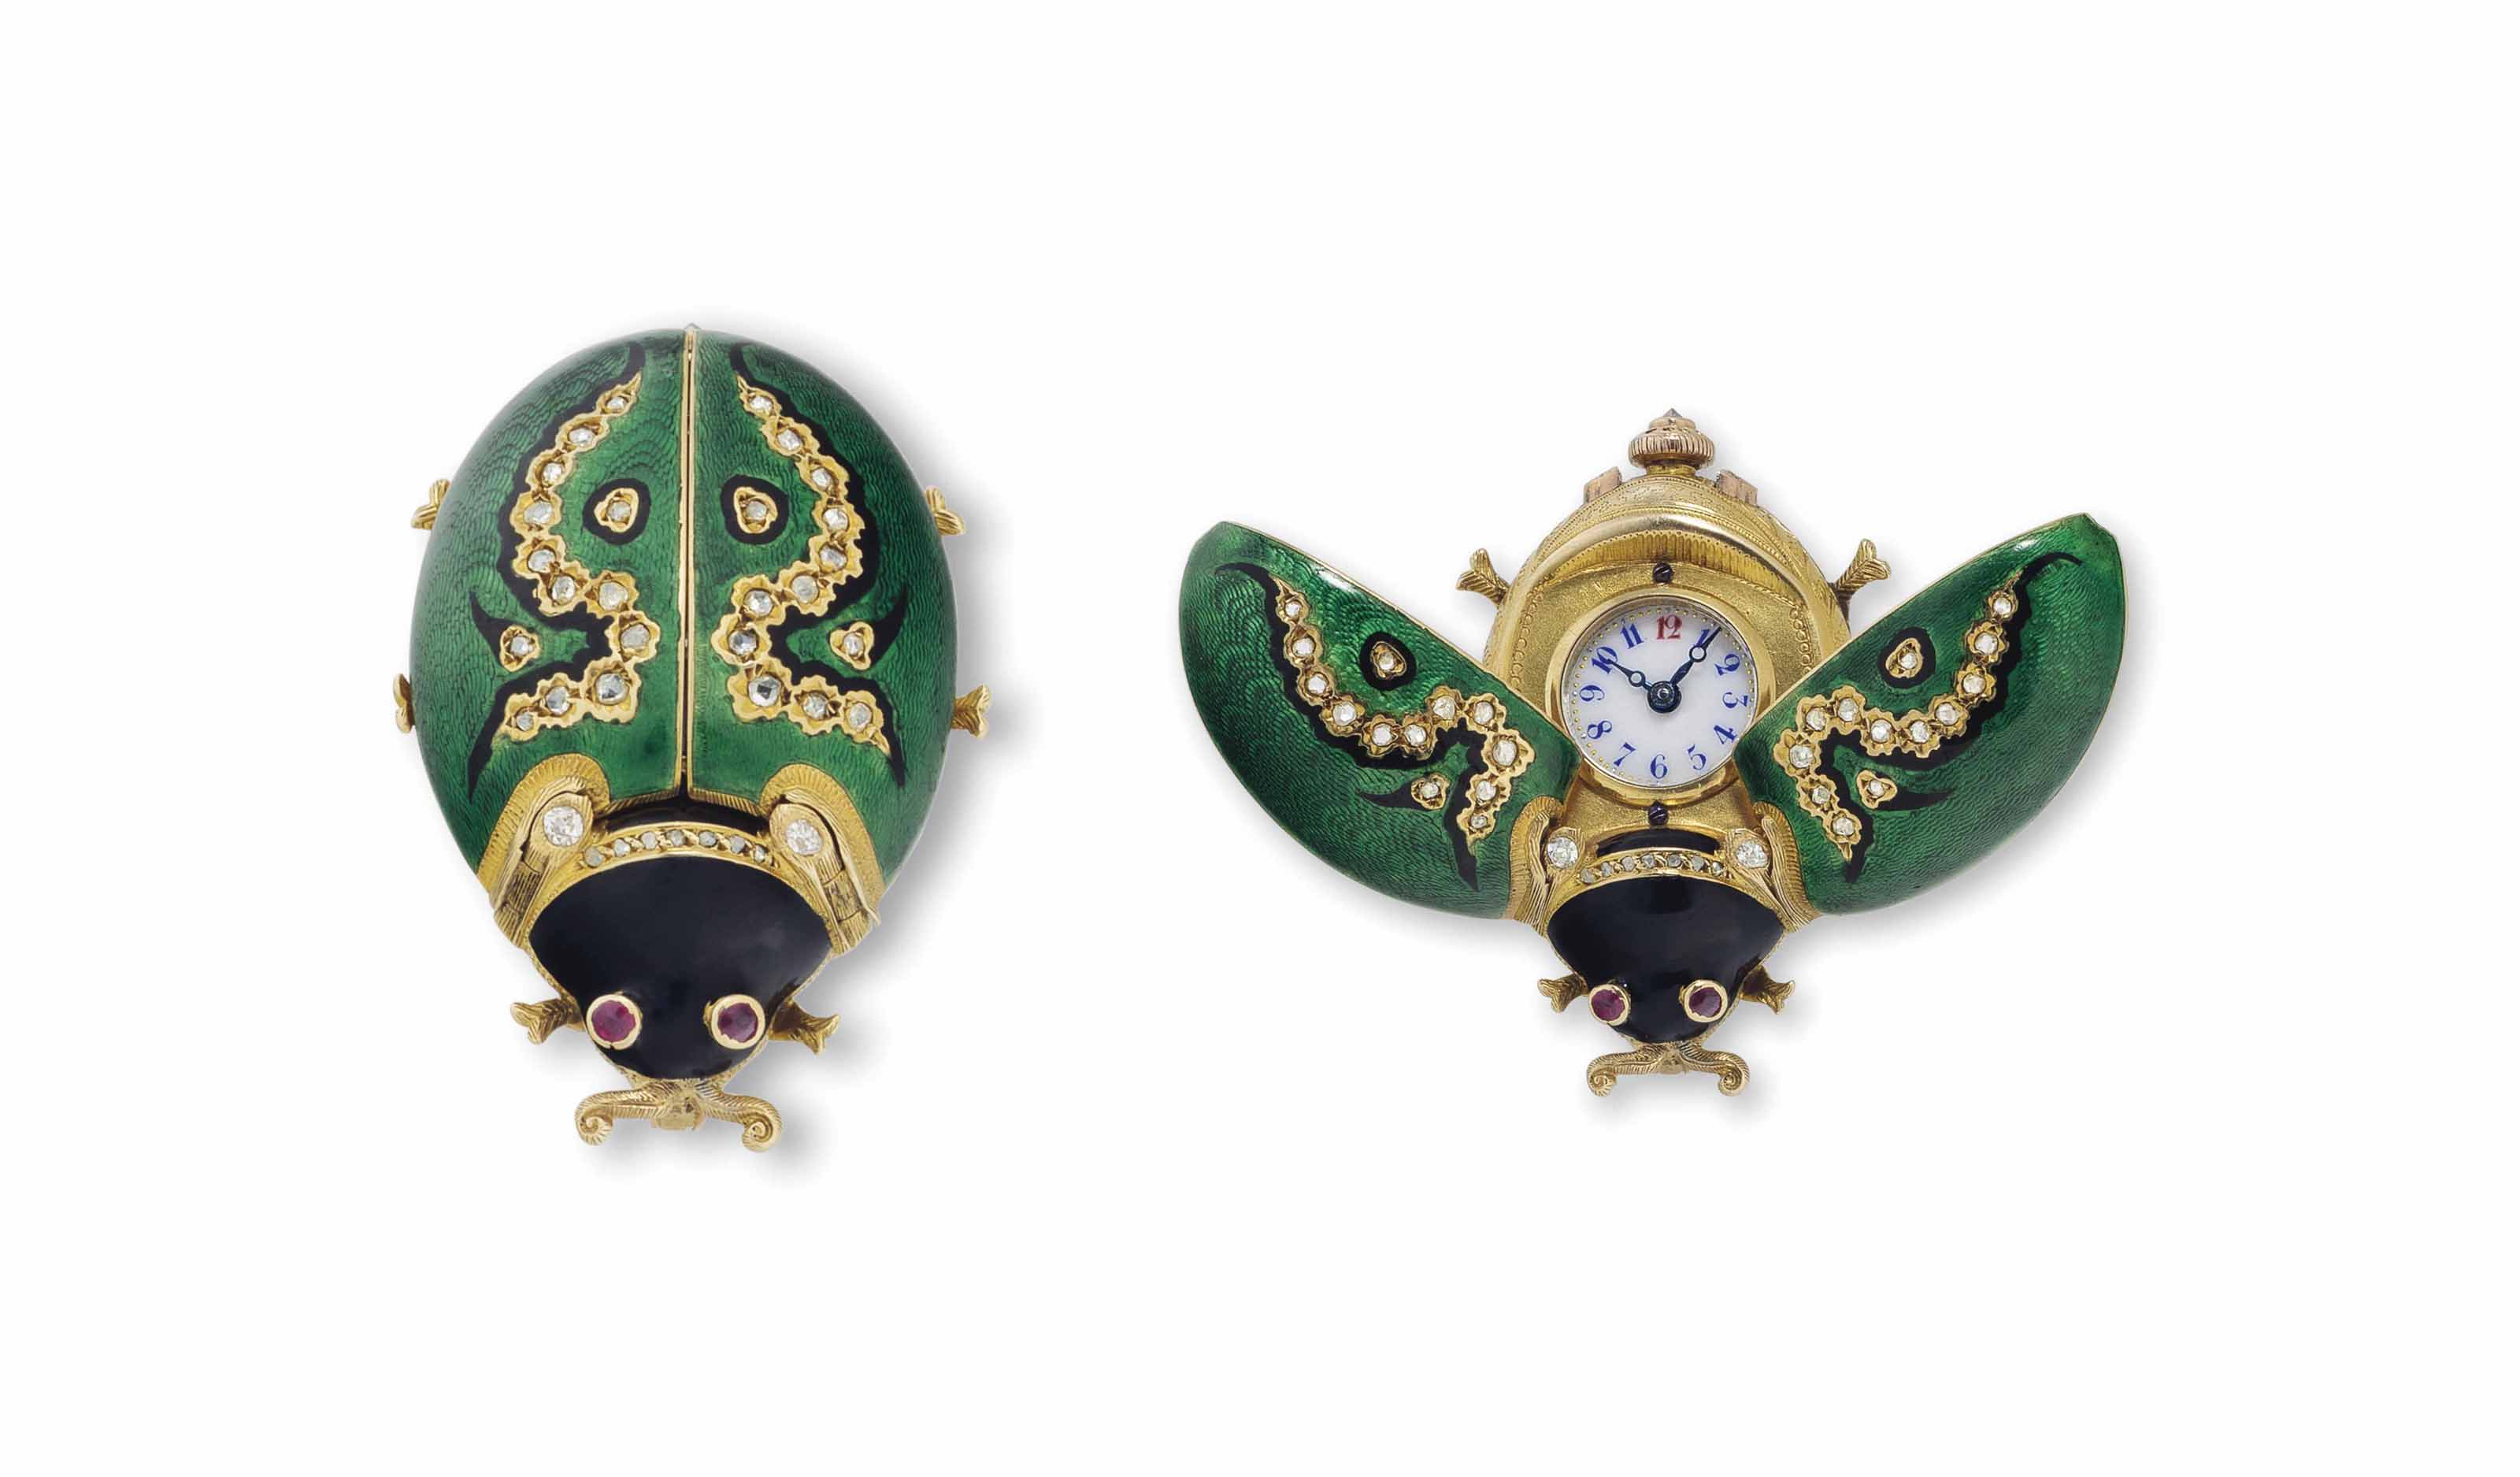 Girard-Perregaux. A Fine and Rare 18k Gold, Enamel and Diamond-Set Lady Bug Form Watch with Concealed Dial